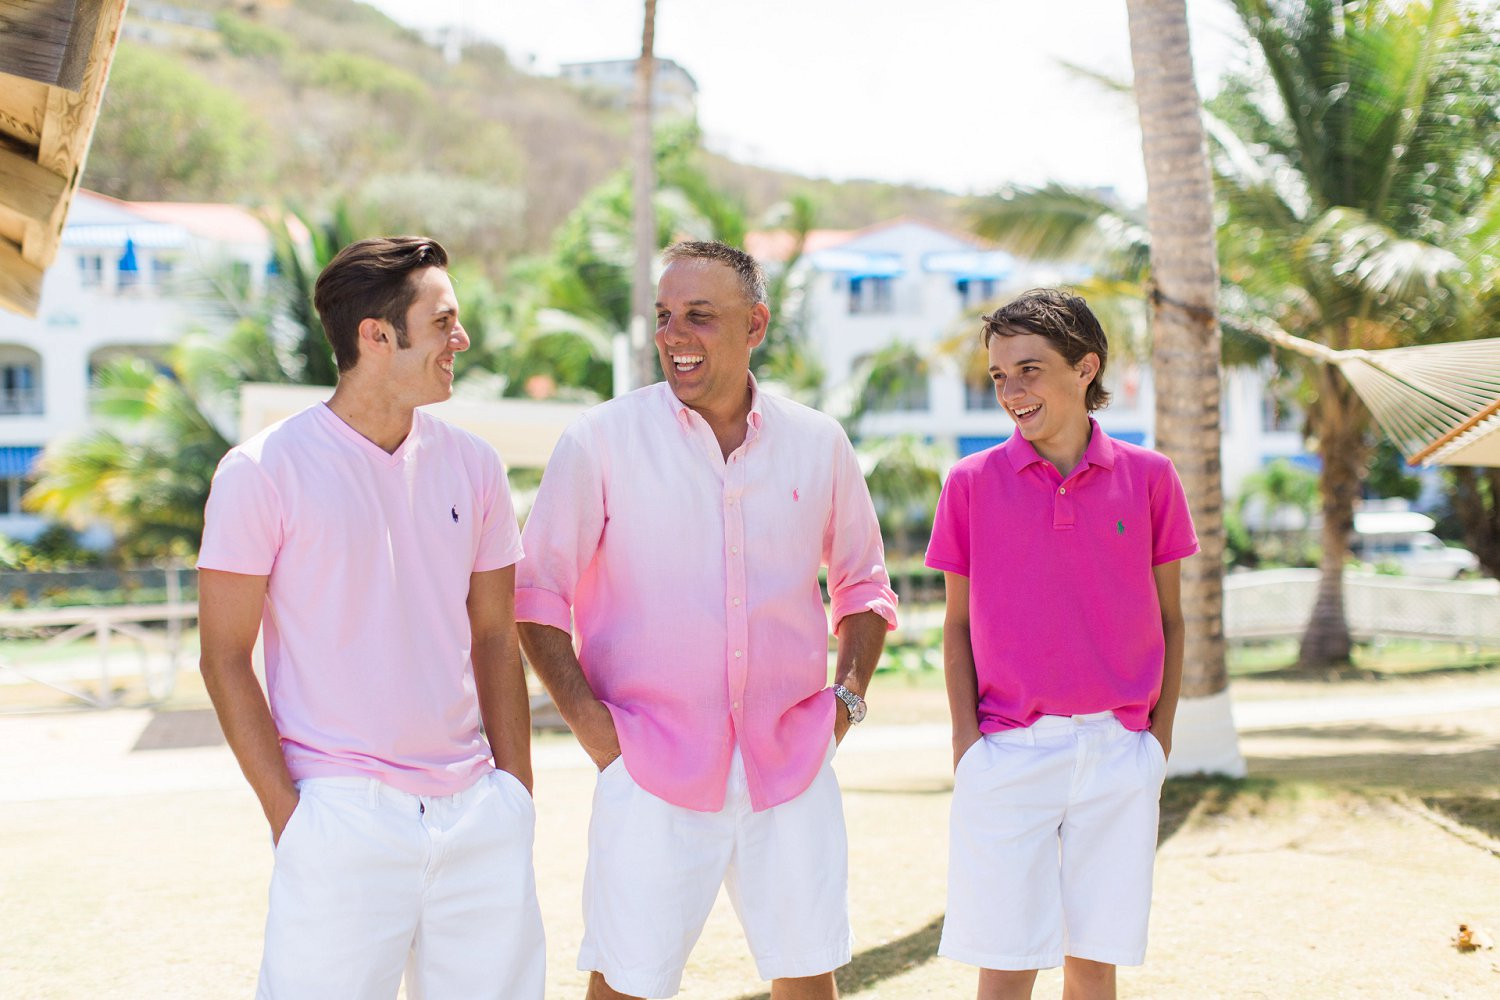 Groom and his sons all wearing pink await the bride for vow renewal ceremony.